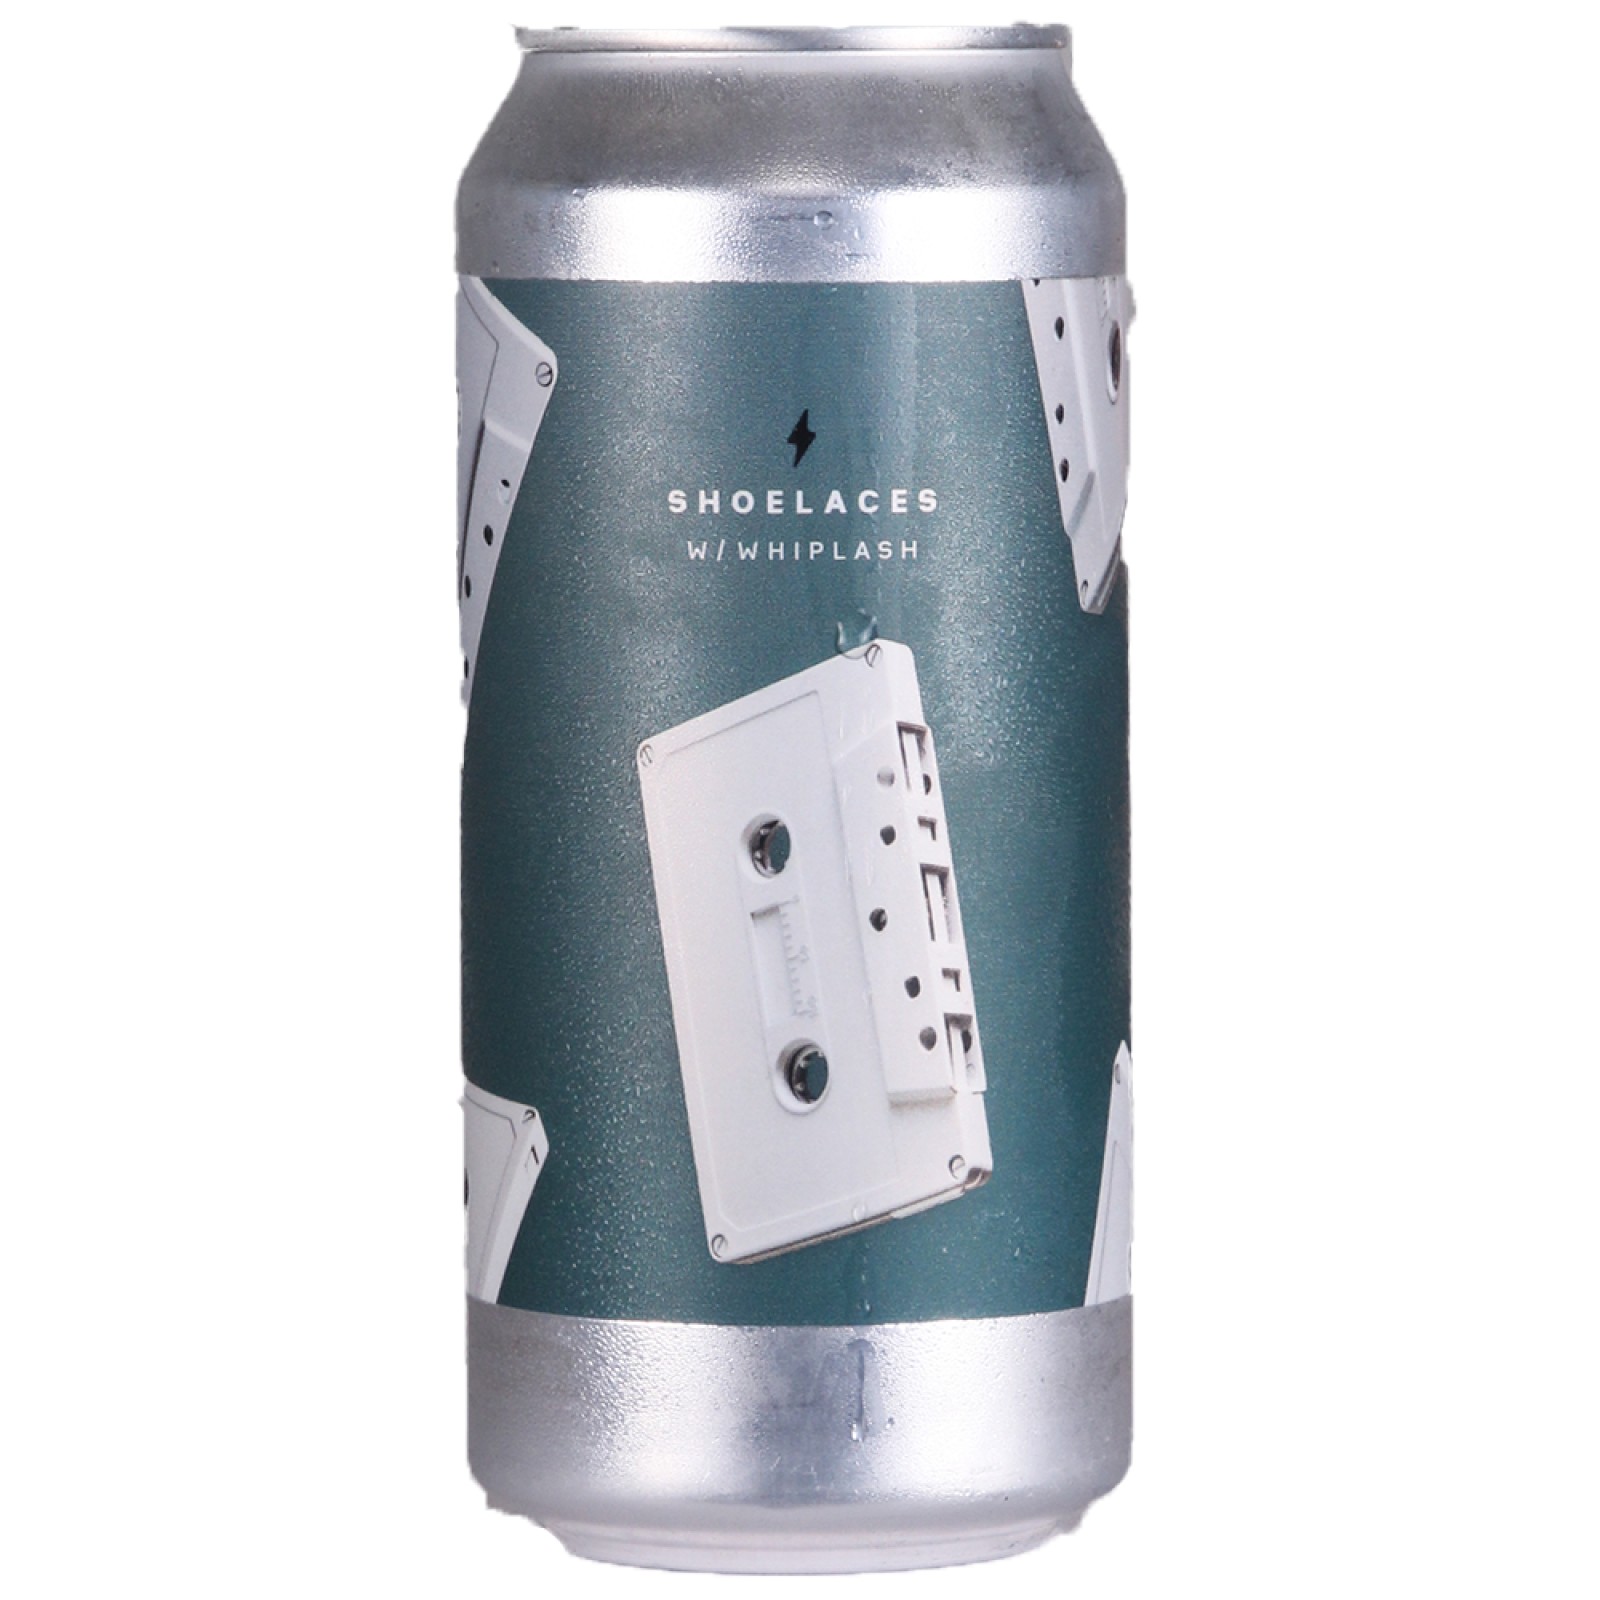 Shoelaces - NE IPA 6.5% 440ml Garage Beer x Whiplash